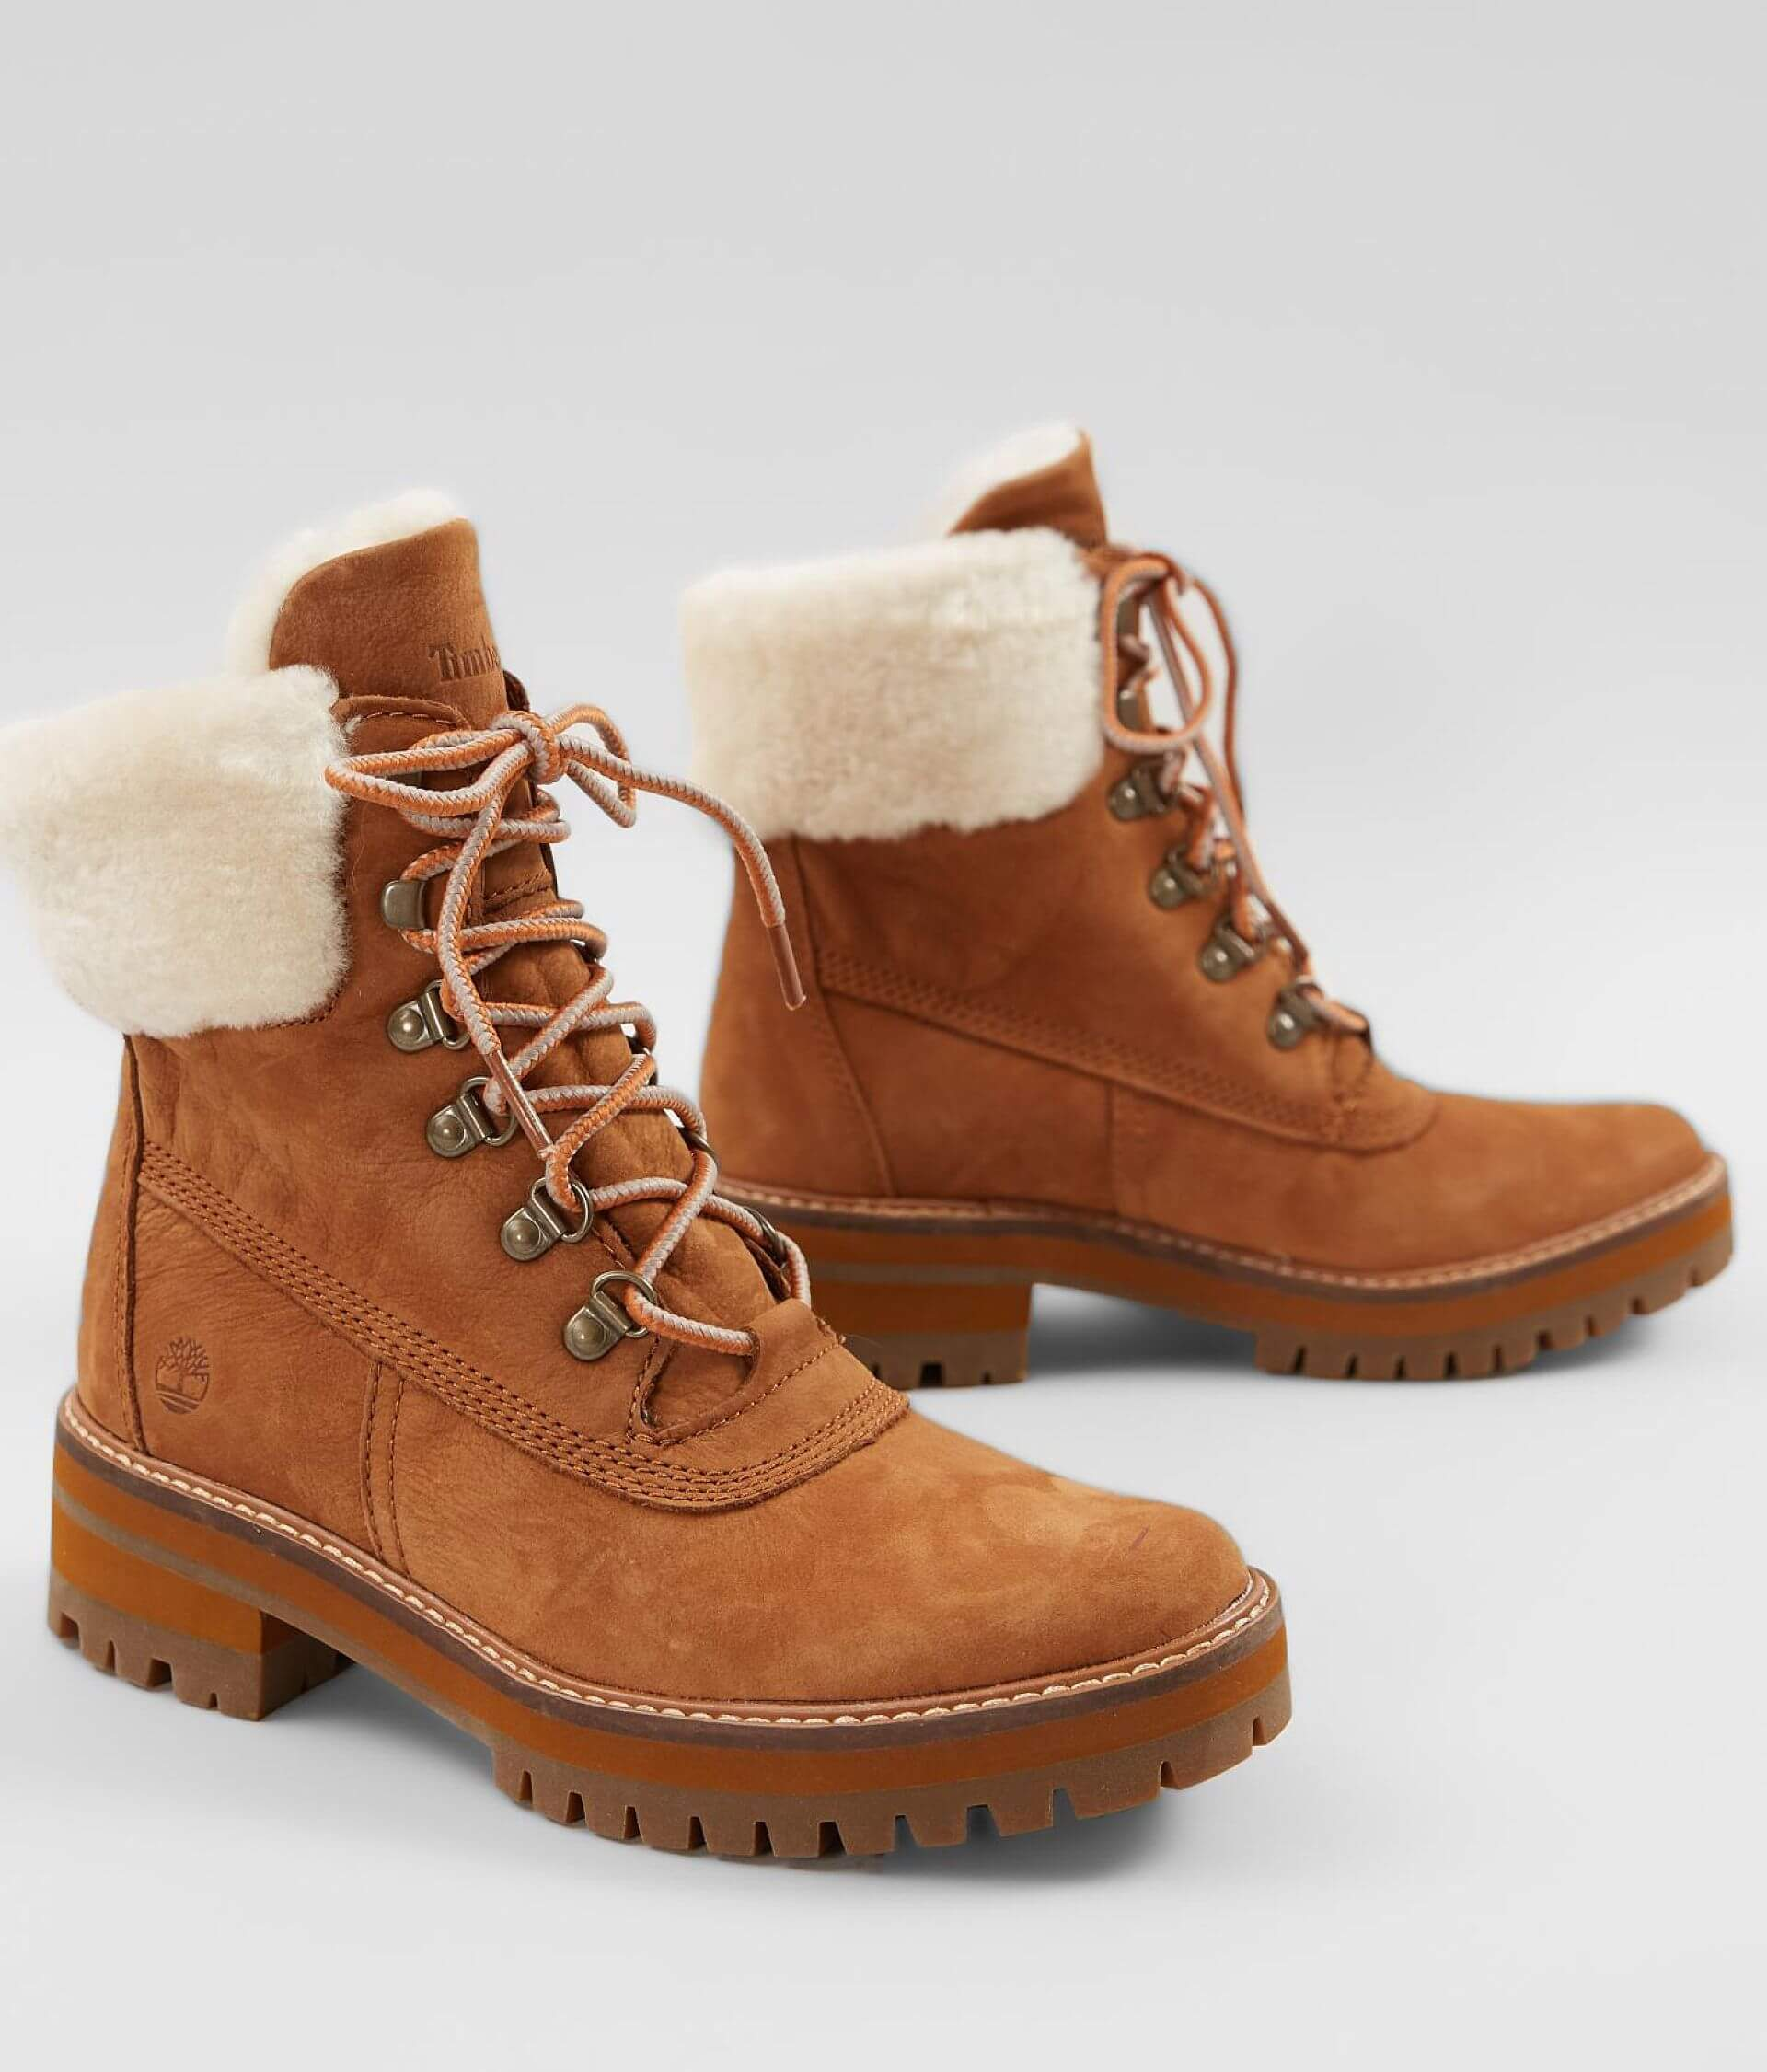 f6f47d93be0 Timberland® Courmayeur Valley Leather Boot - Women's Shoes in Rust ...